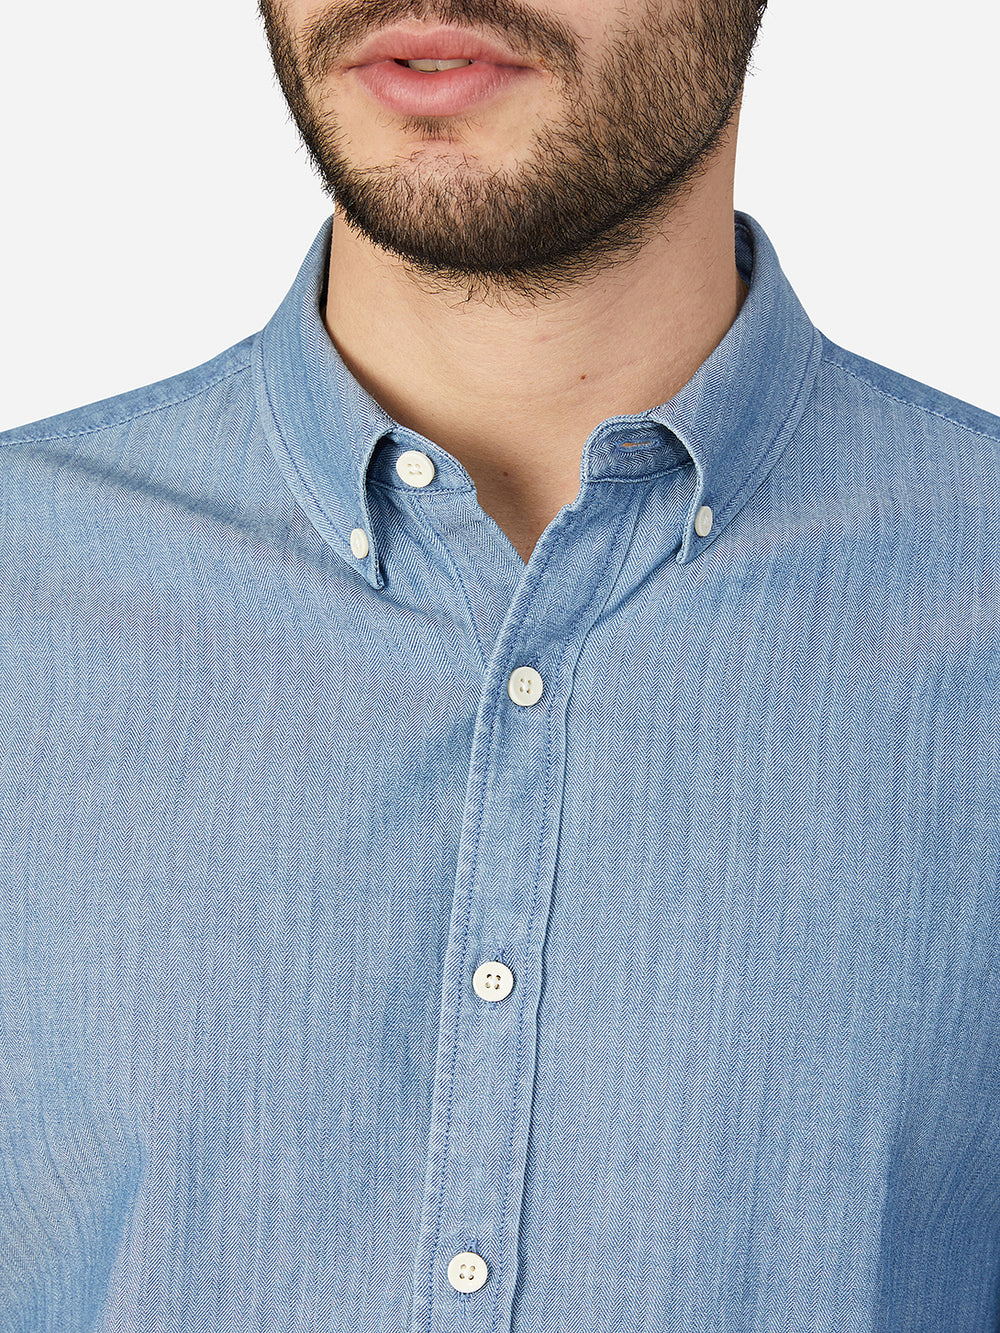 LIGHT INDIGO BLUE HERRINGBONE FULTON SHIRT